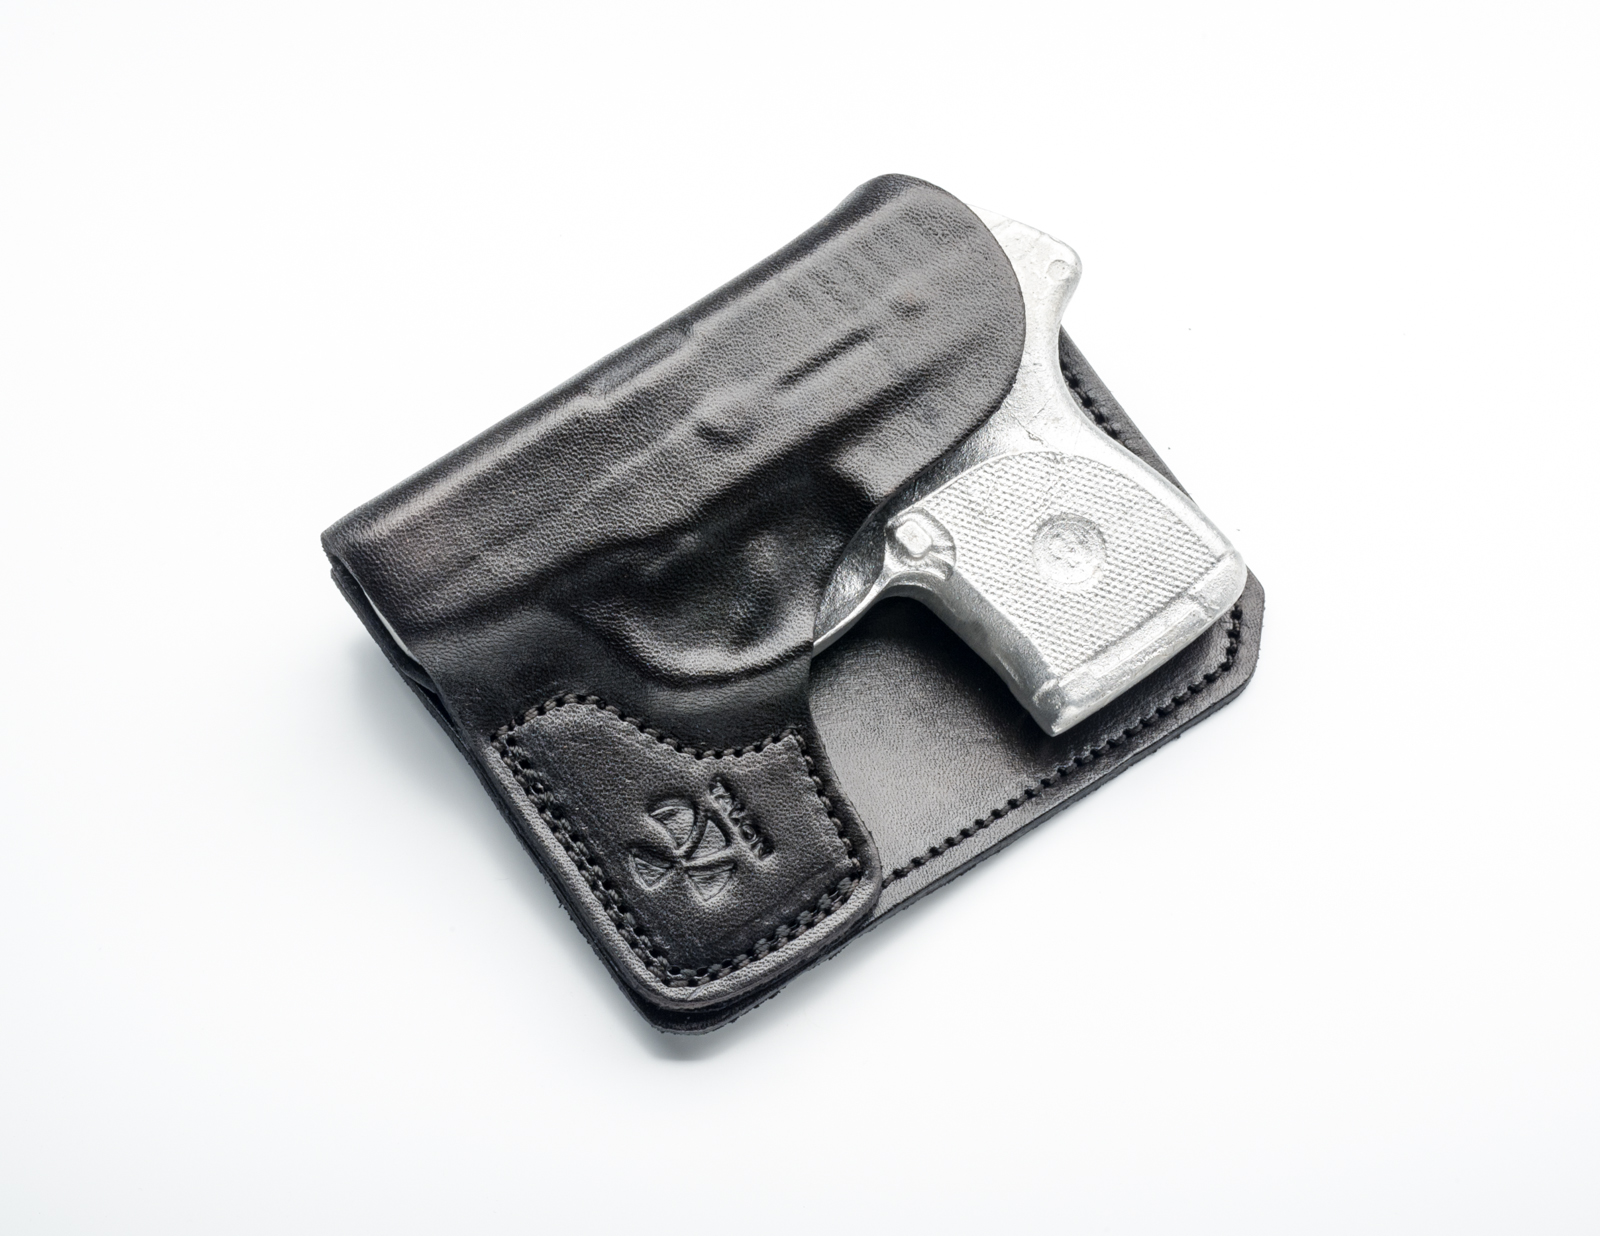 Talon-Ruger-LCP-Kel-Tec-P3AT-Wallet-Holster